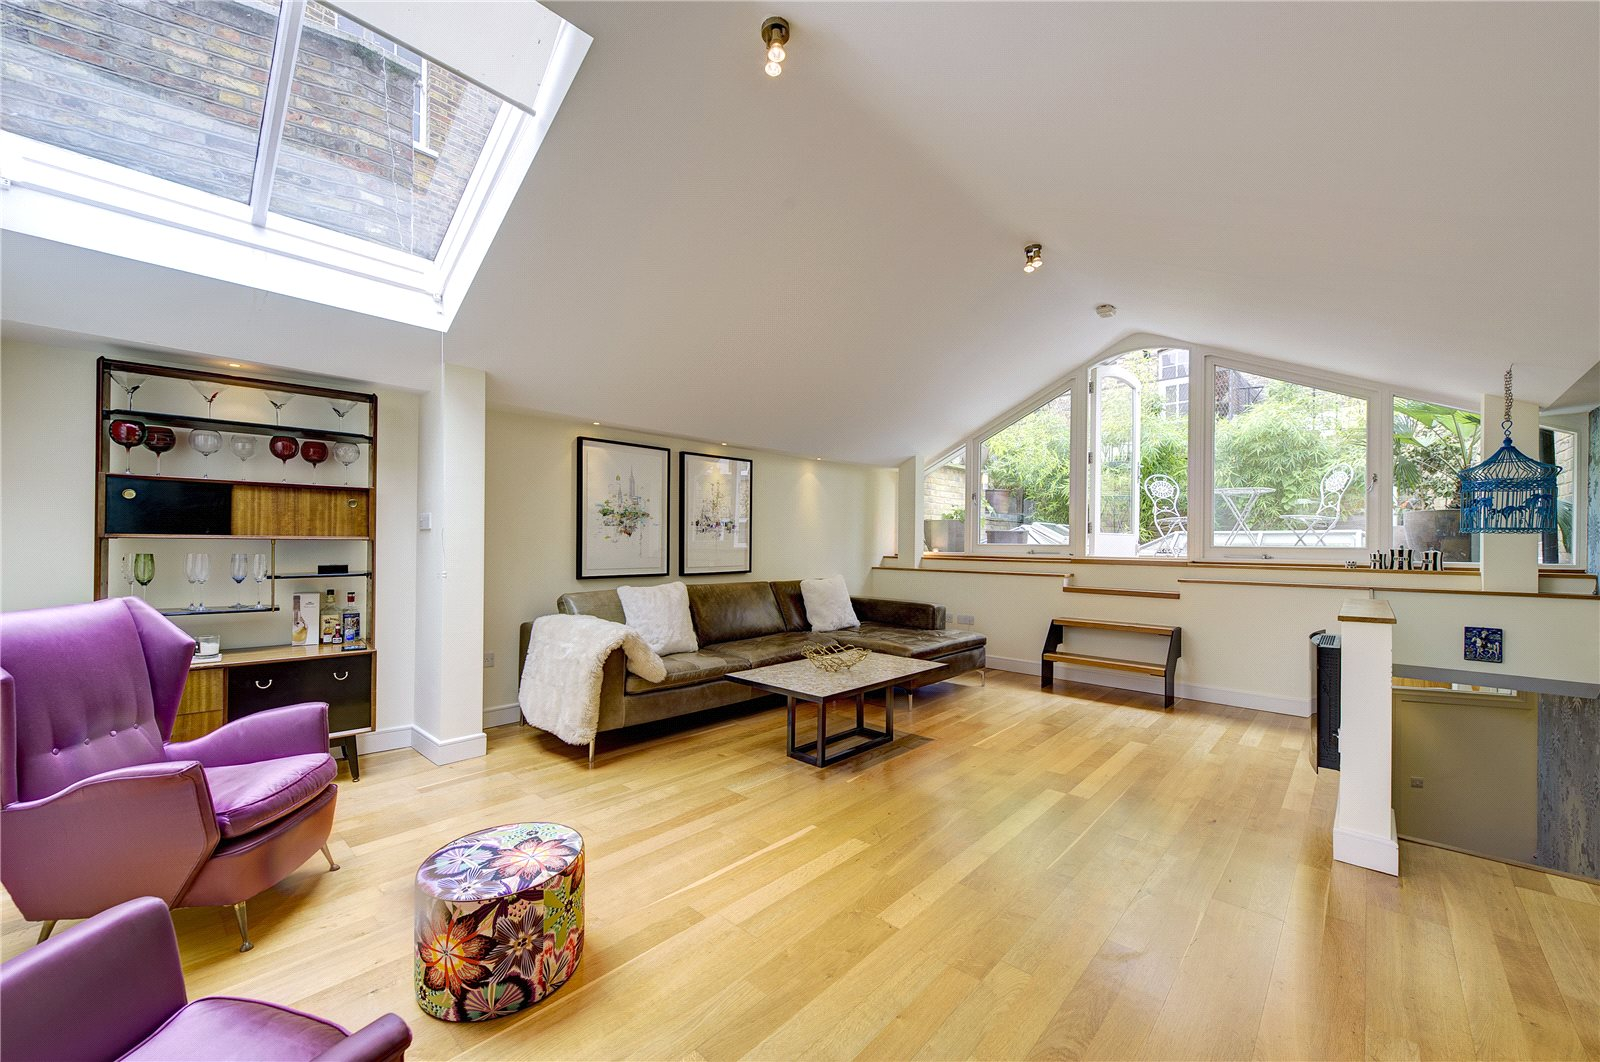 Single Family Home for Sale at St. Michaels Street, London, W2 London, England